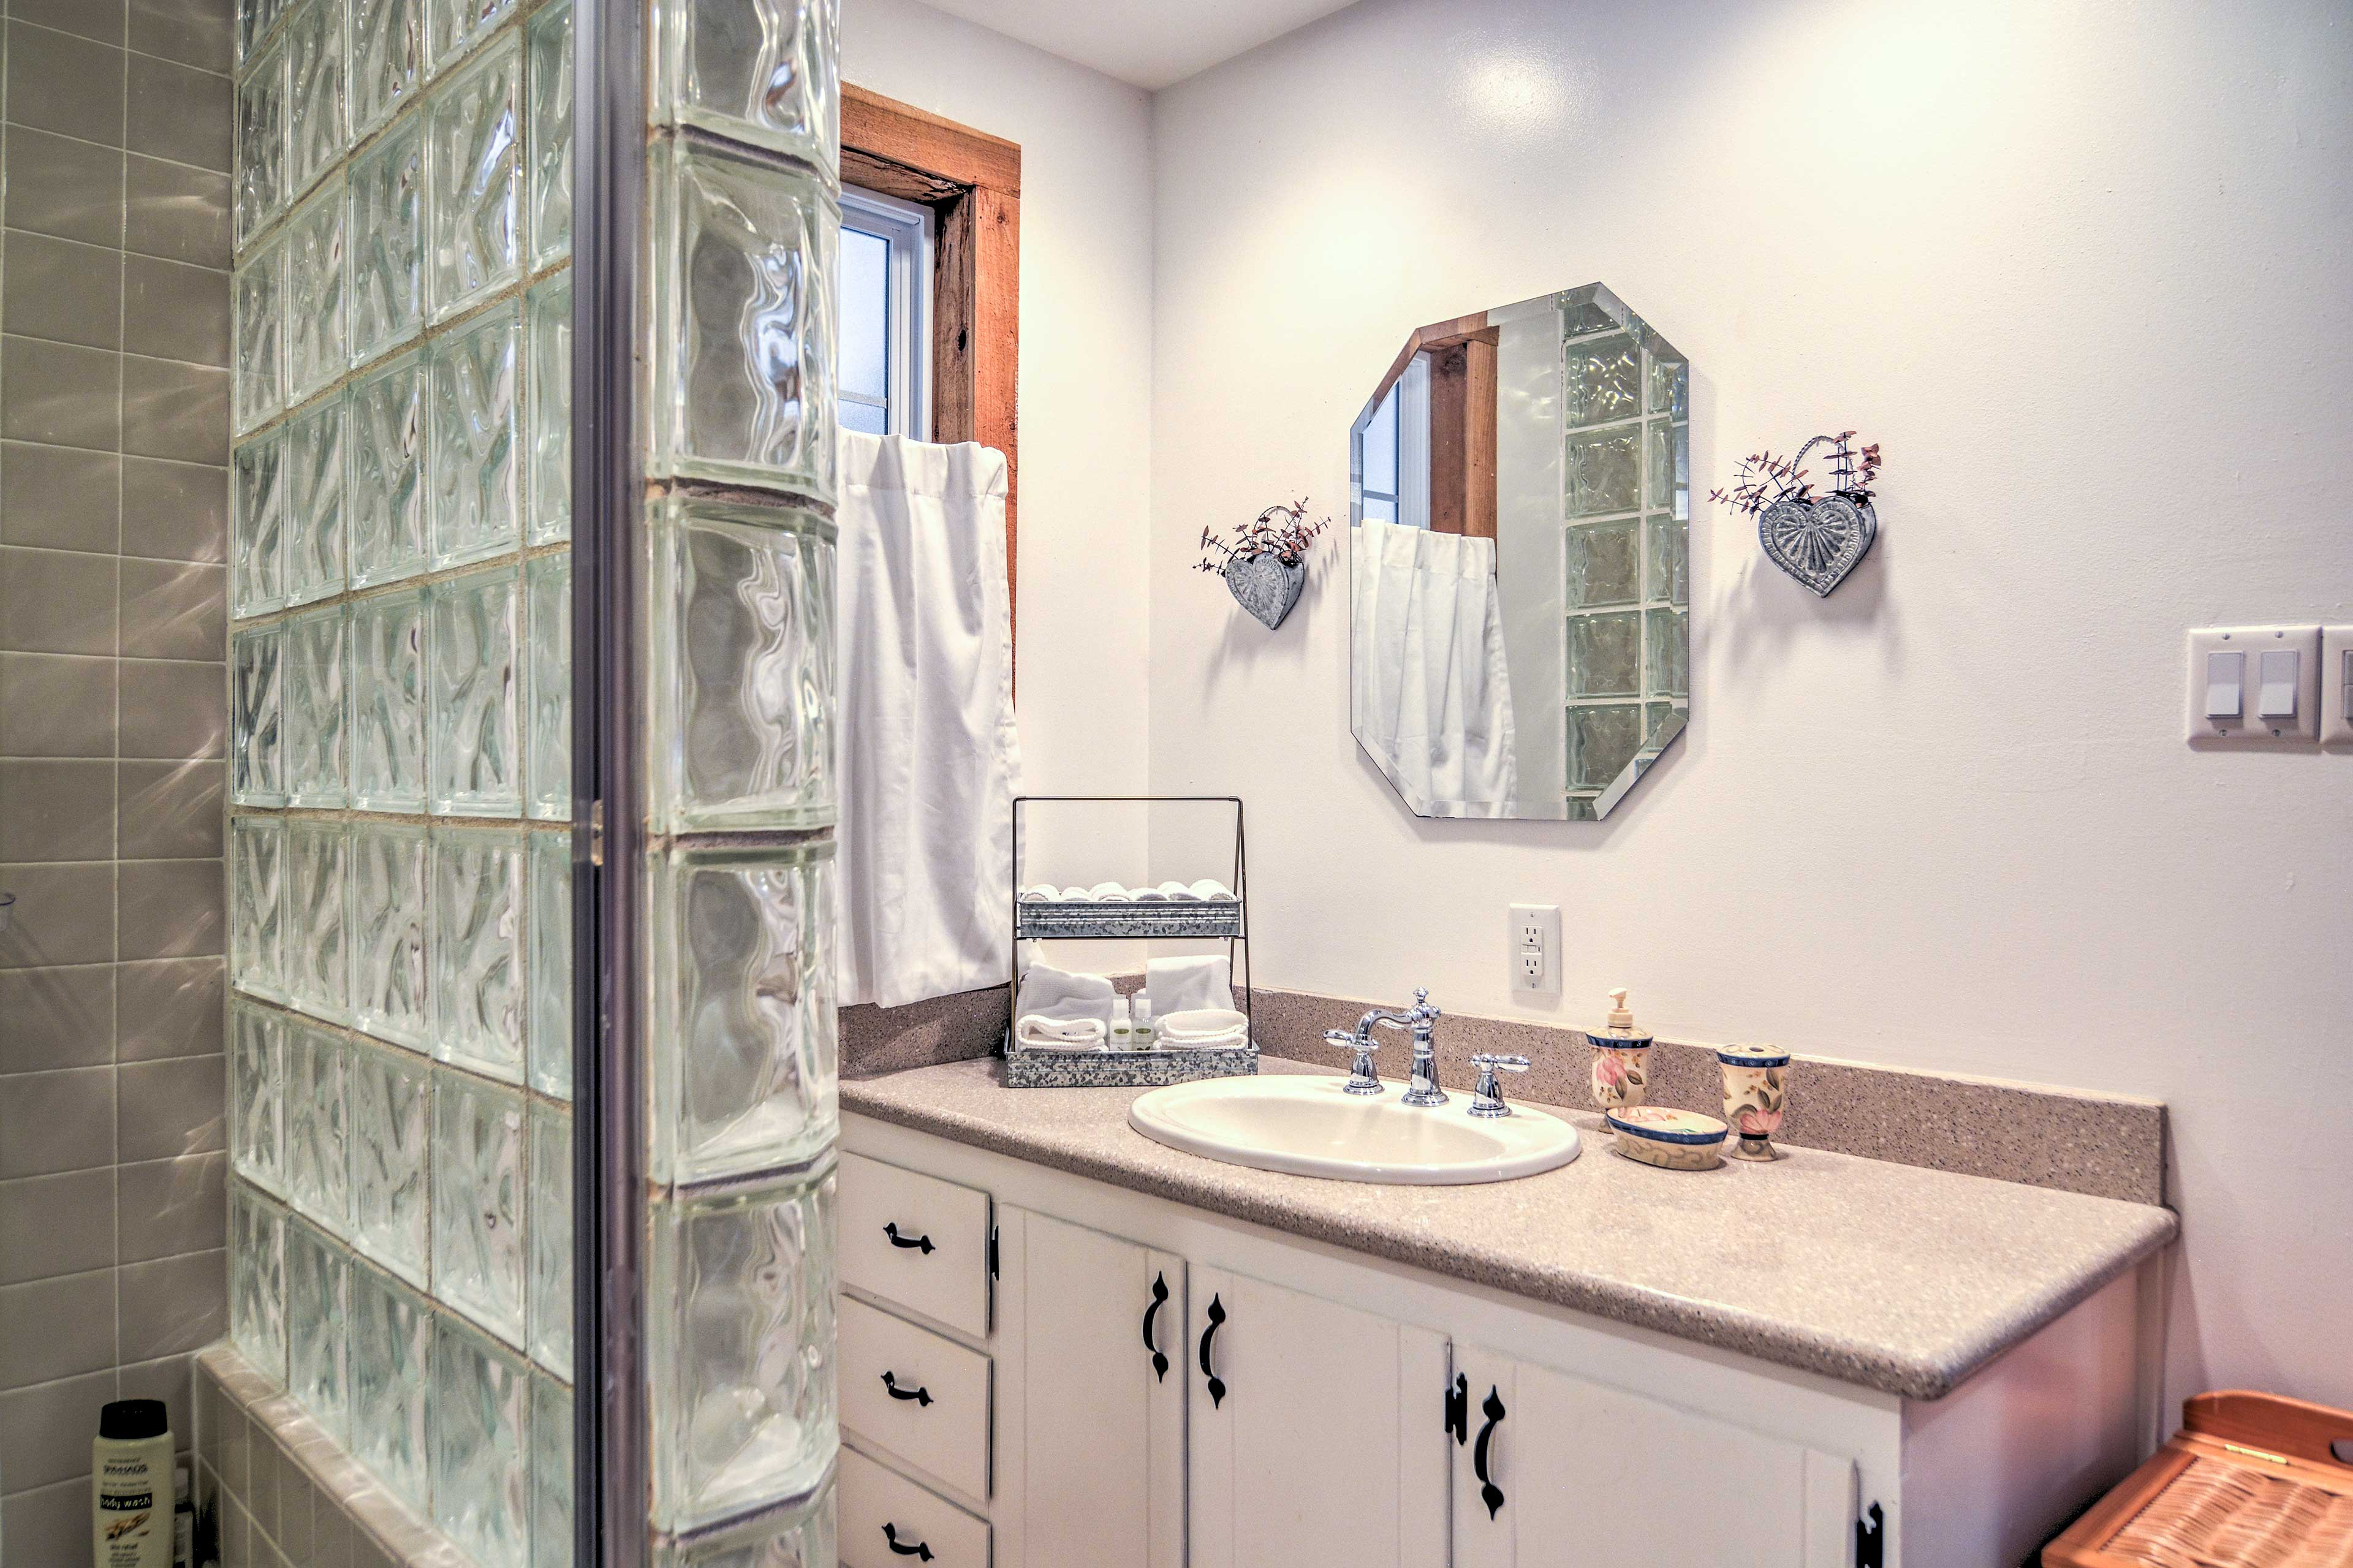 The first bathroom features new fixtures and appliances.